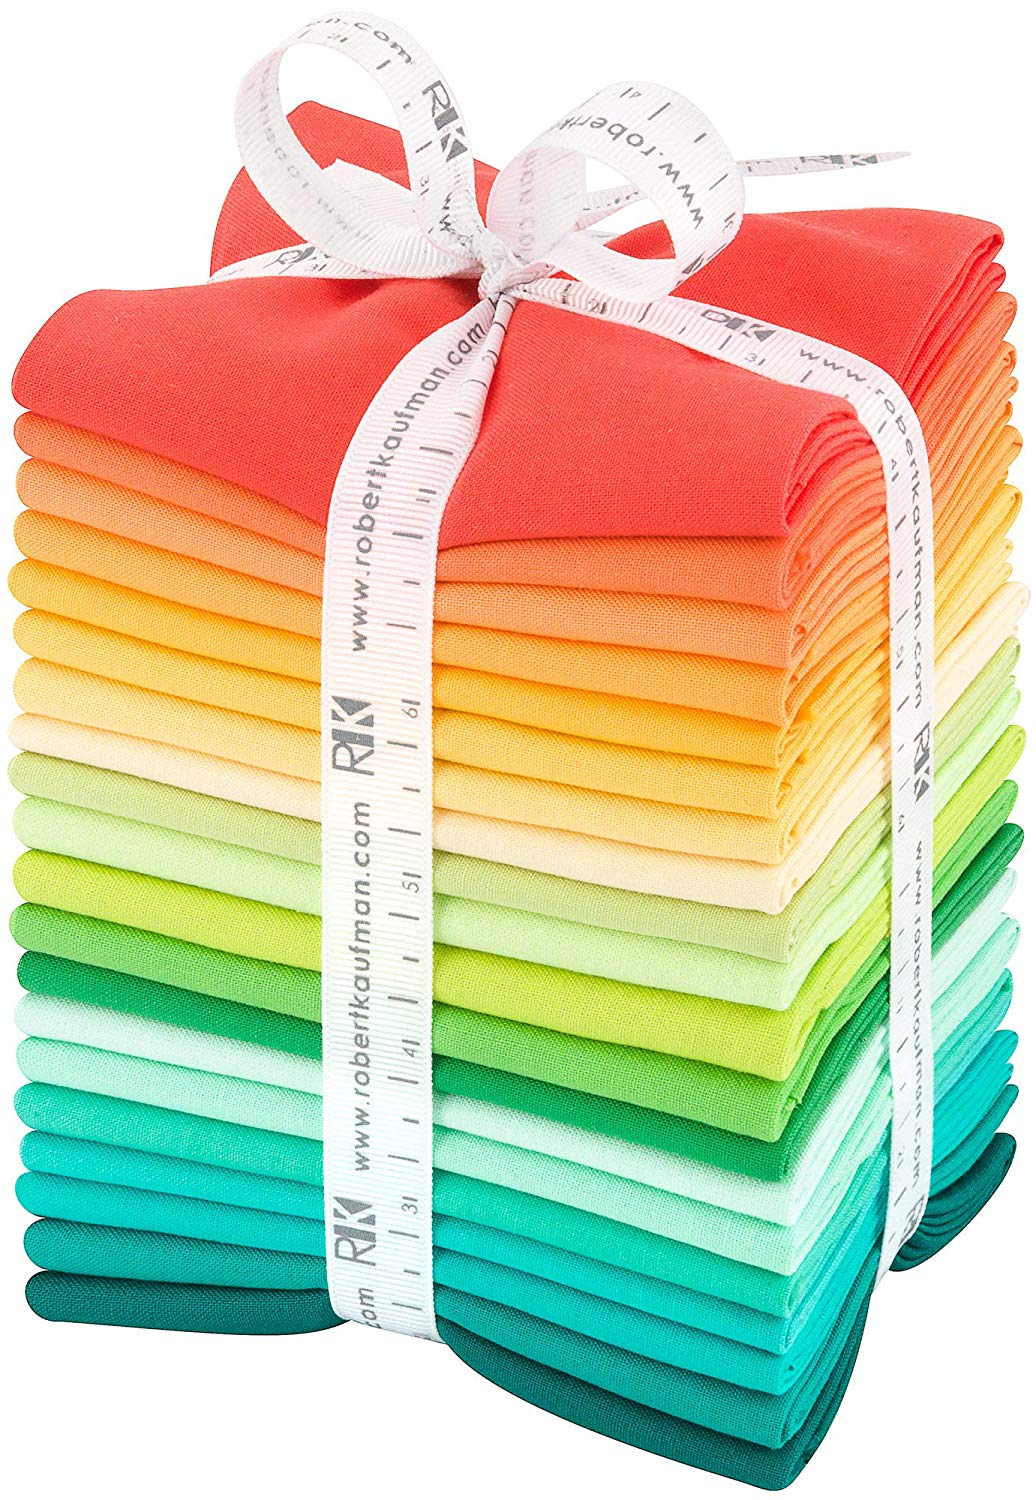 Kona Cotton Solids Fat Quarter Bundle - Darlene Zimmerman Curated - 20pcs